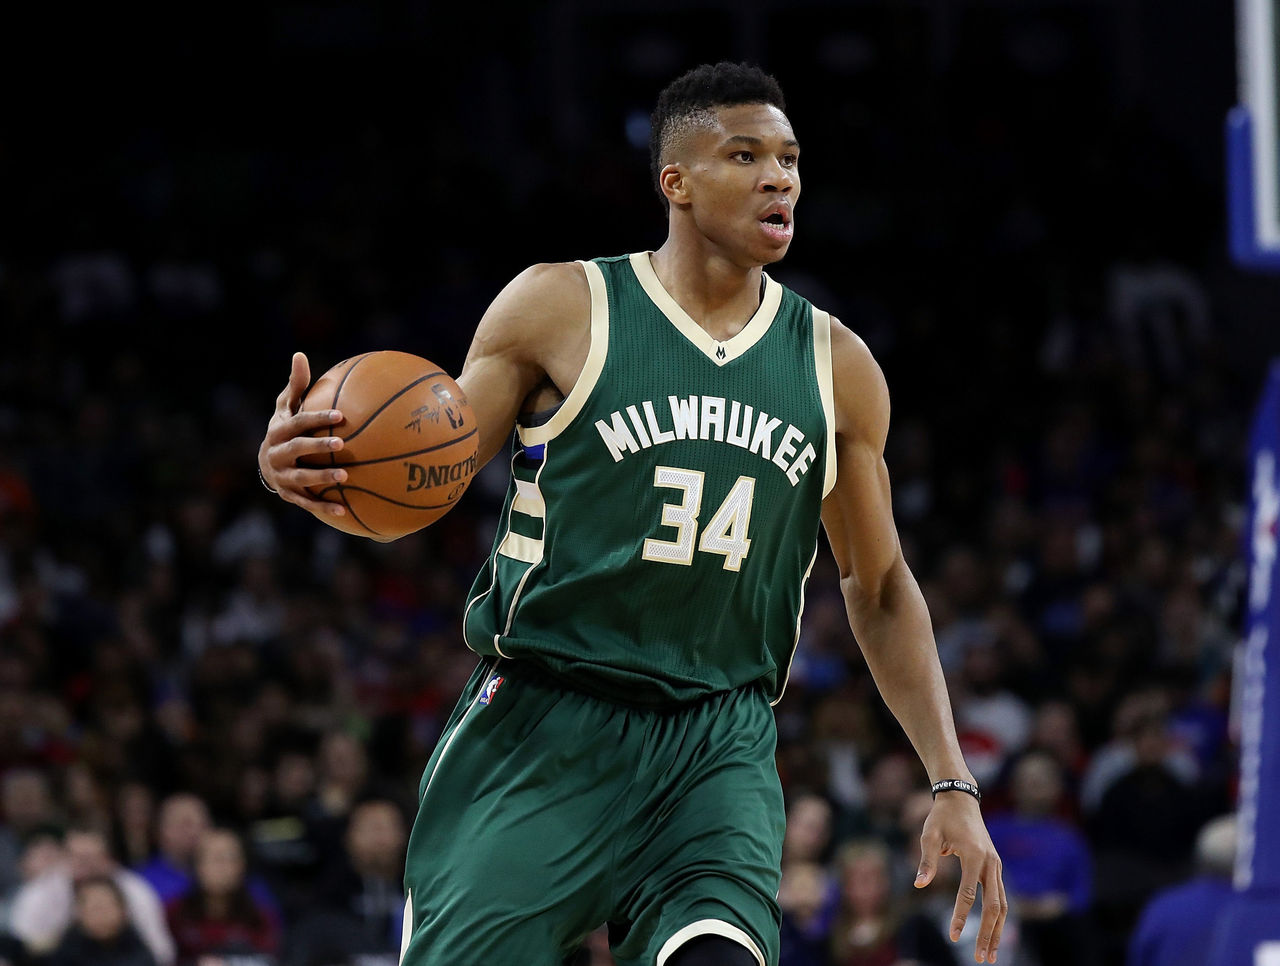 Cropped 2016 12 29t033342z 1608996729 nocid rtrmadp 3 nba milwaukee bucks at detroit pistons